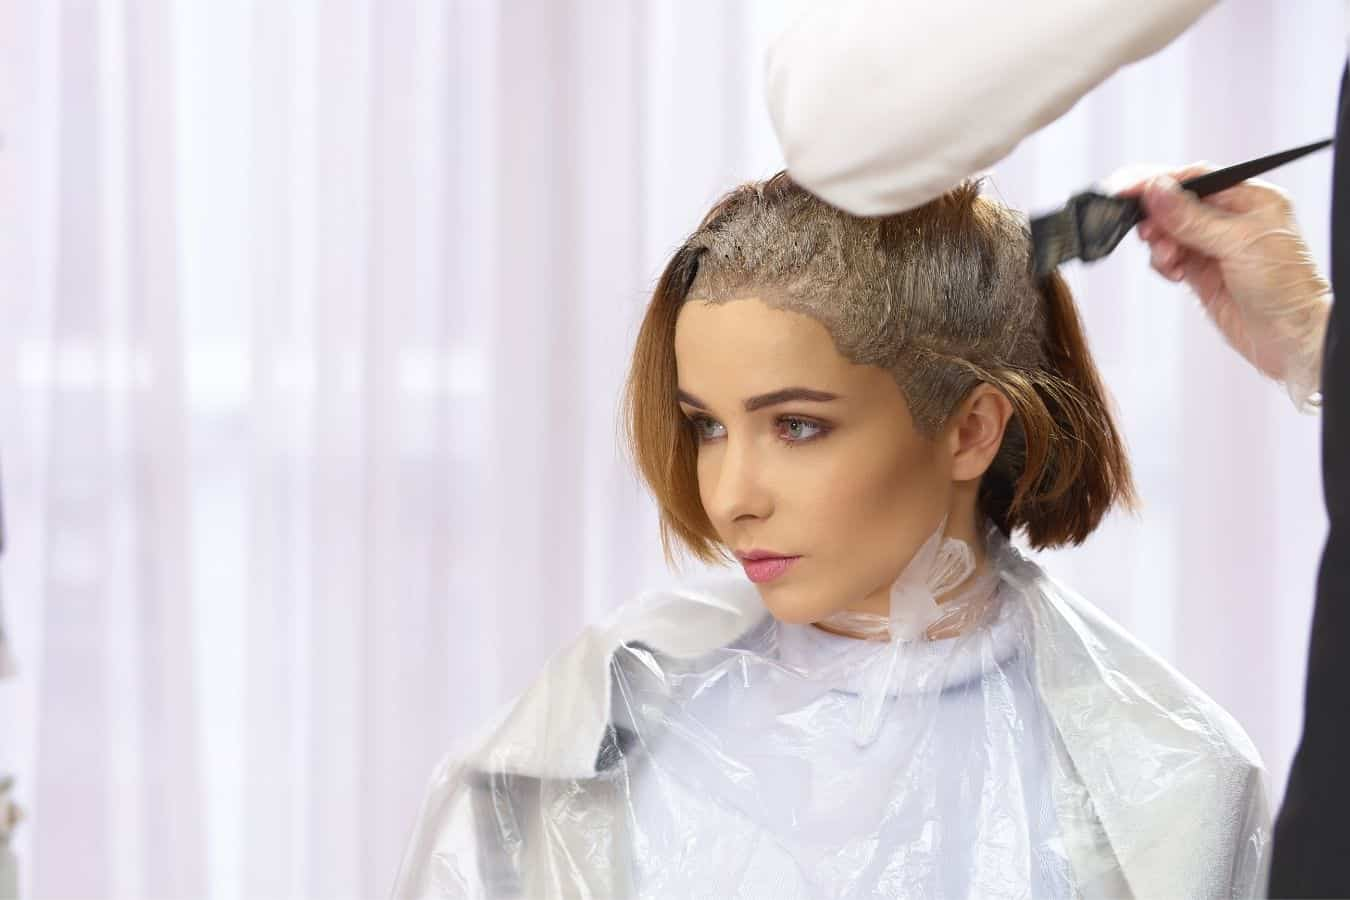 how to get Rid of Hair Dye Smell